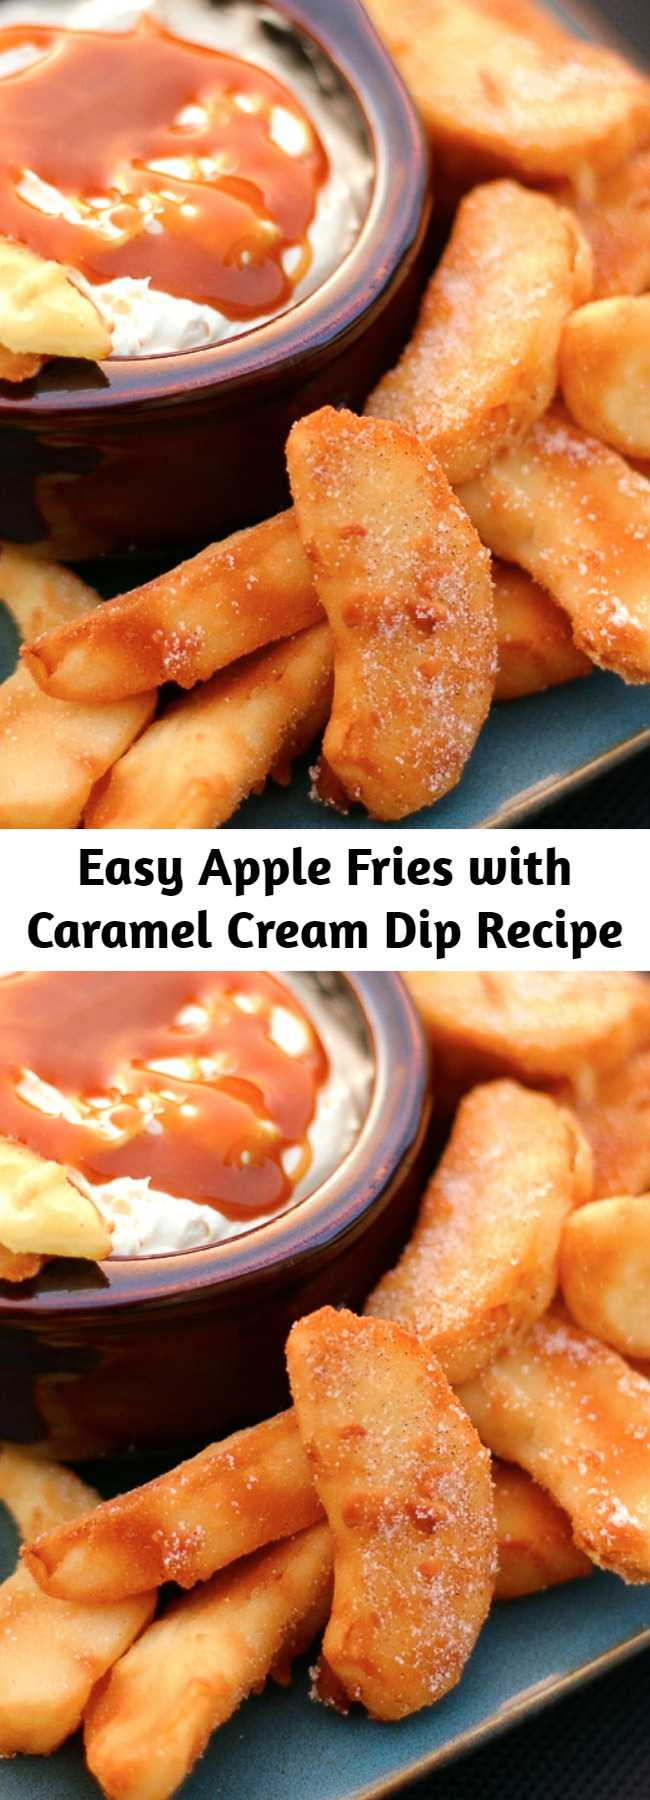 Easy Apple Fries with Caramel Cream Dip Recipe - These Apple Fries with Caramel Cream Dip are the perfect warm dessert for a crisp fall evening. It made our house smell like apple pie. Crisp apple wedges are lightly battered and fried in a pan, then sprinkled with a cinnamon-sugar mix. What really sets these fried apples apart is the dipping sauce. You'll love this creamy, caramel-infused dip.